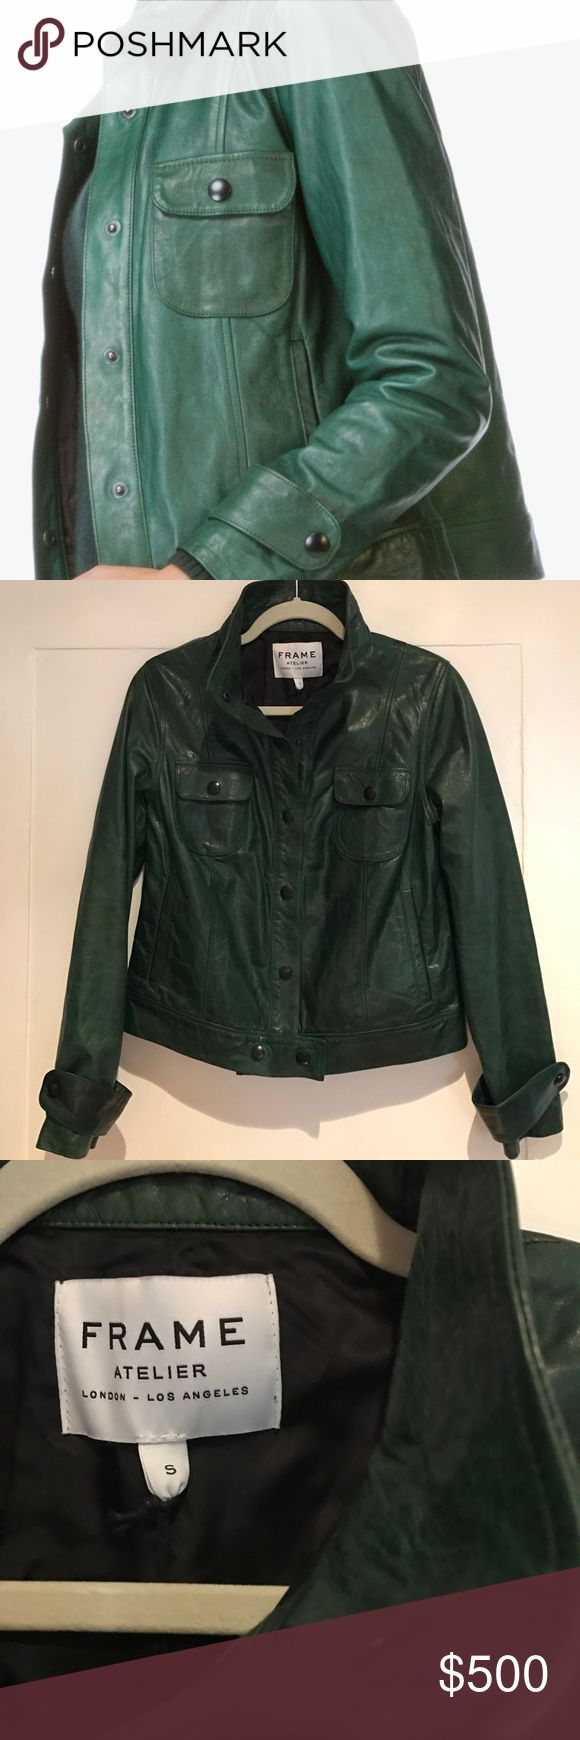 FRAME DENIM Spruce Green Lambskin Leather Jacket FRAME DENIM Spruce Green Lambskin Leather Jacket, size small. Black buttons, boxy shape. New with tags, never worn. Frame Denim Jackets & Coats